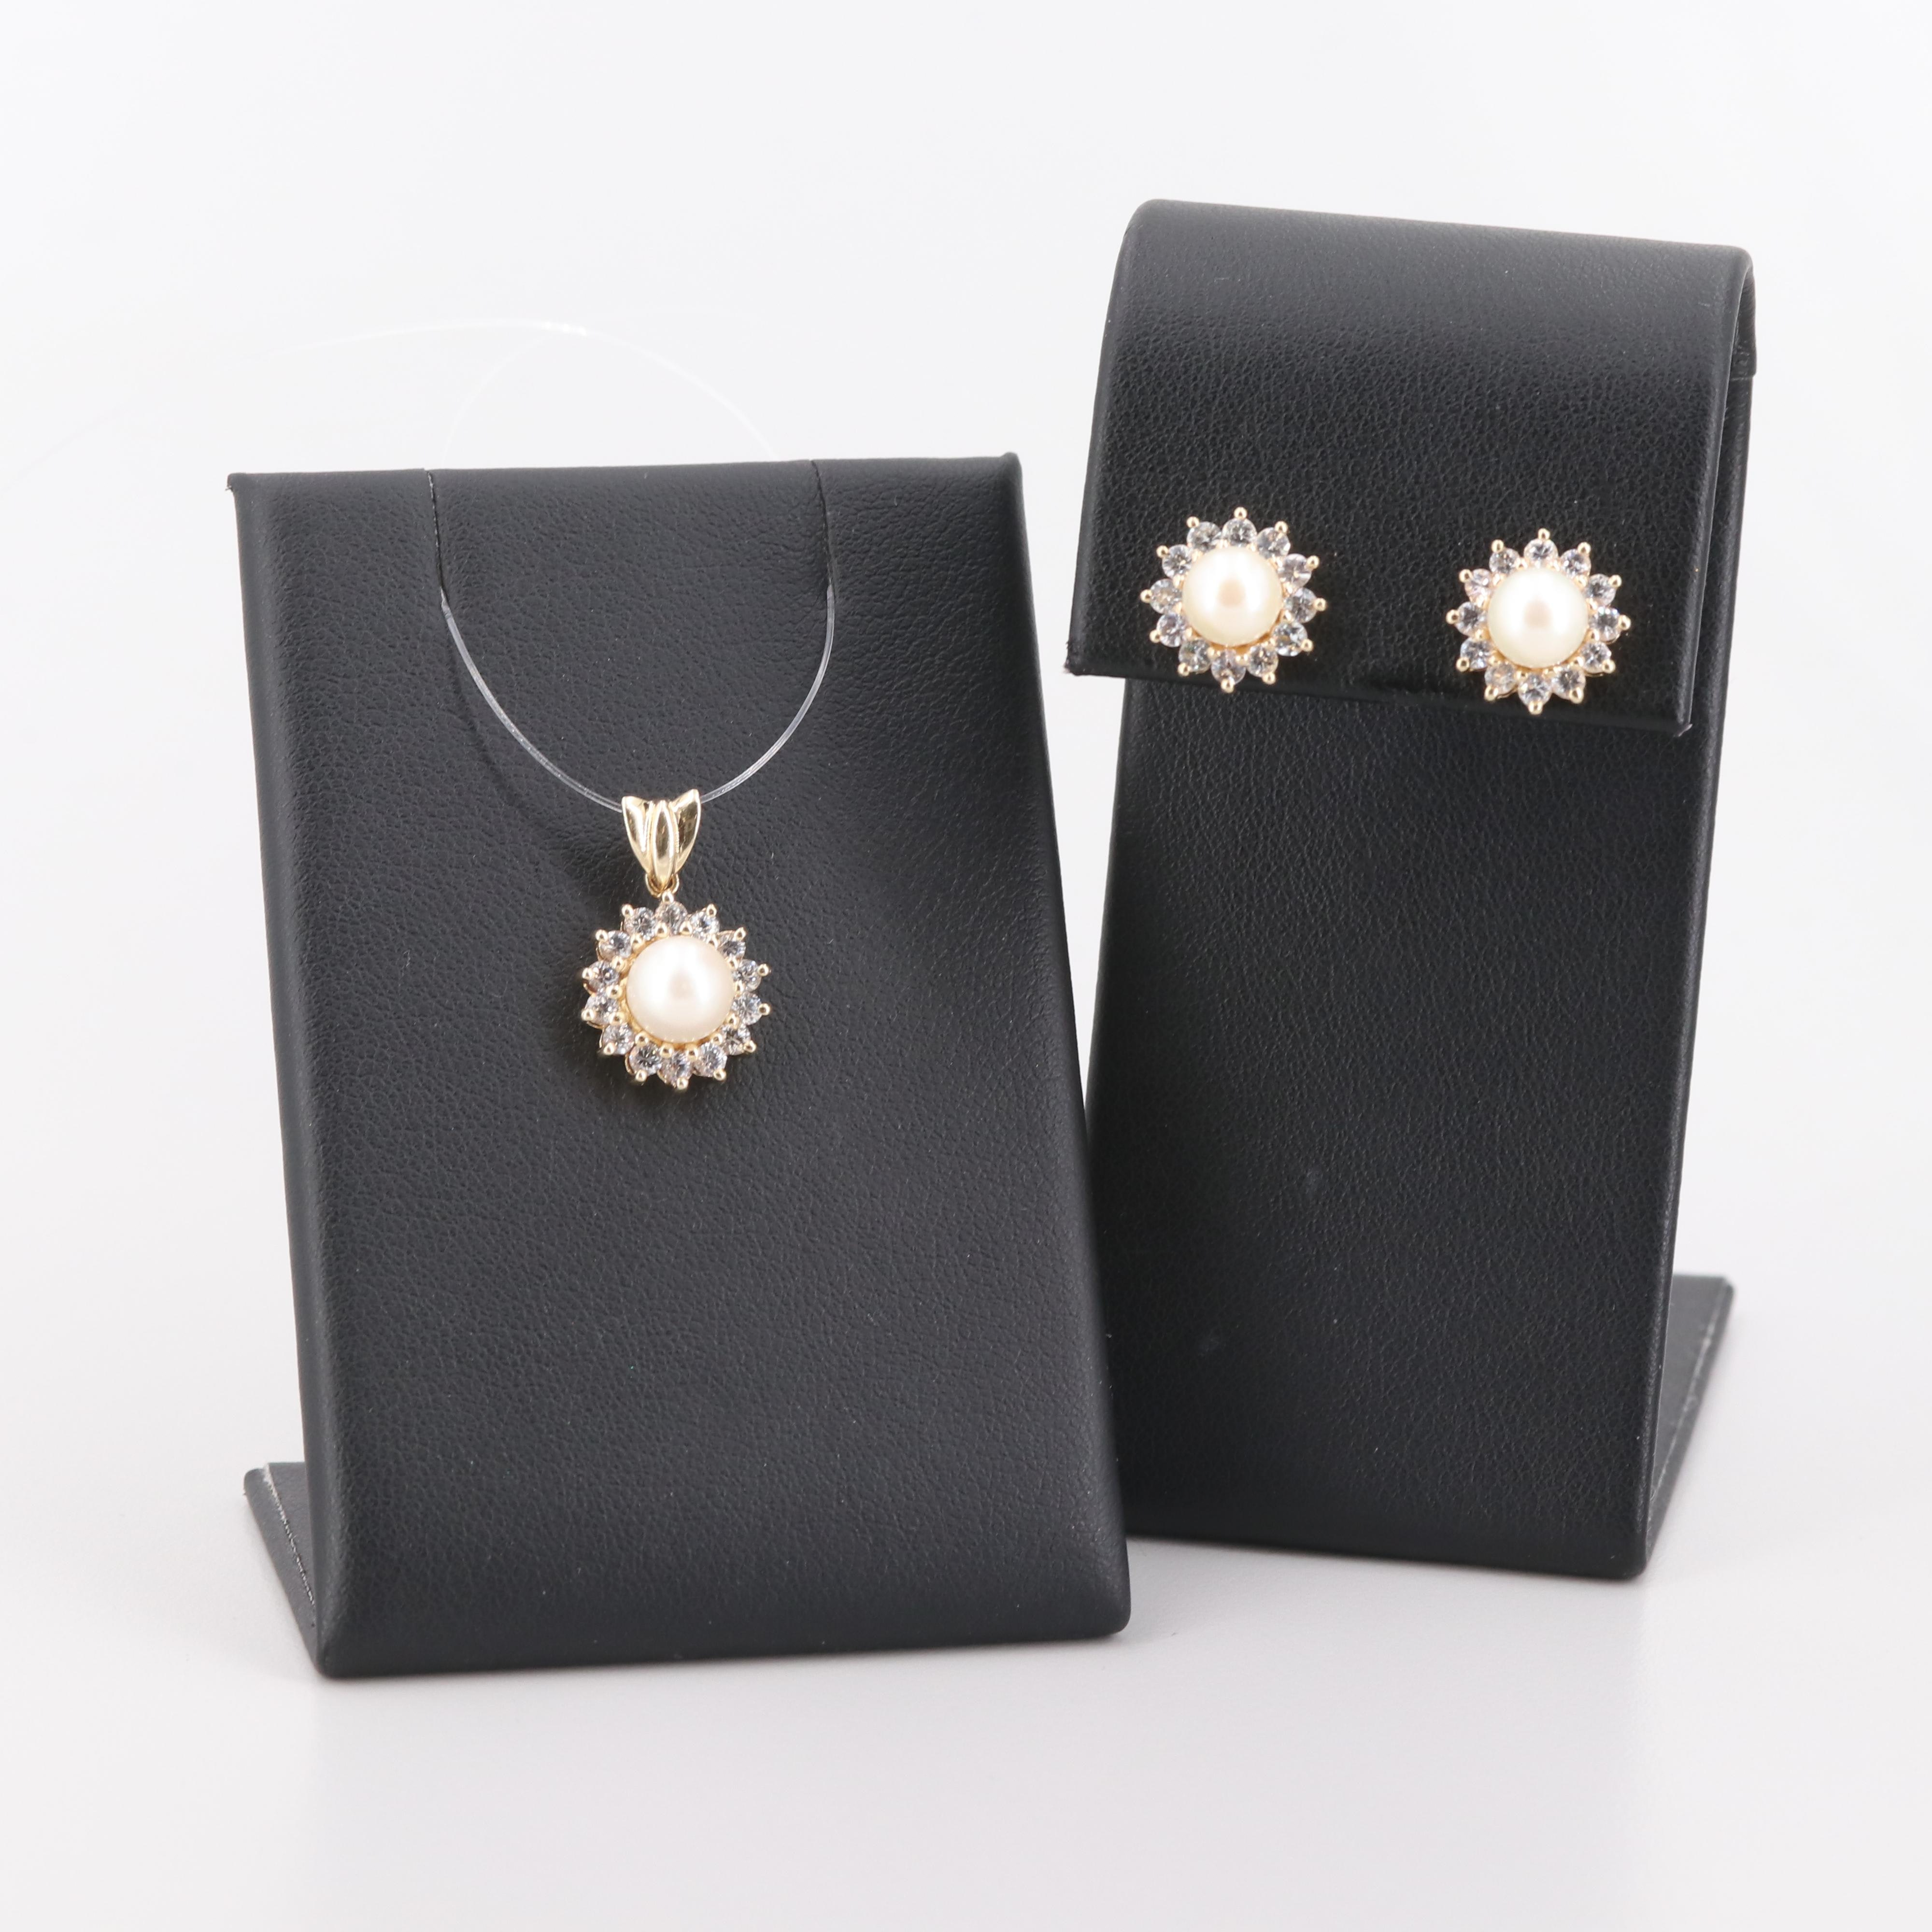 10K Yellow Gold Cultured Pearl Earrings and Pendant with Cubic Zirconia Accents